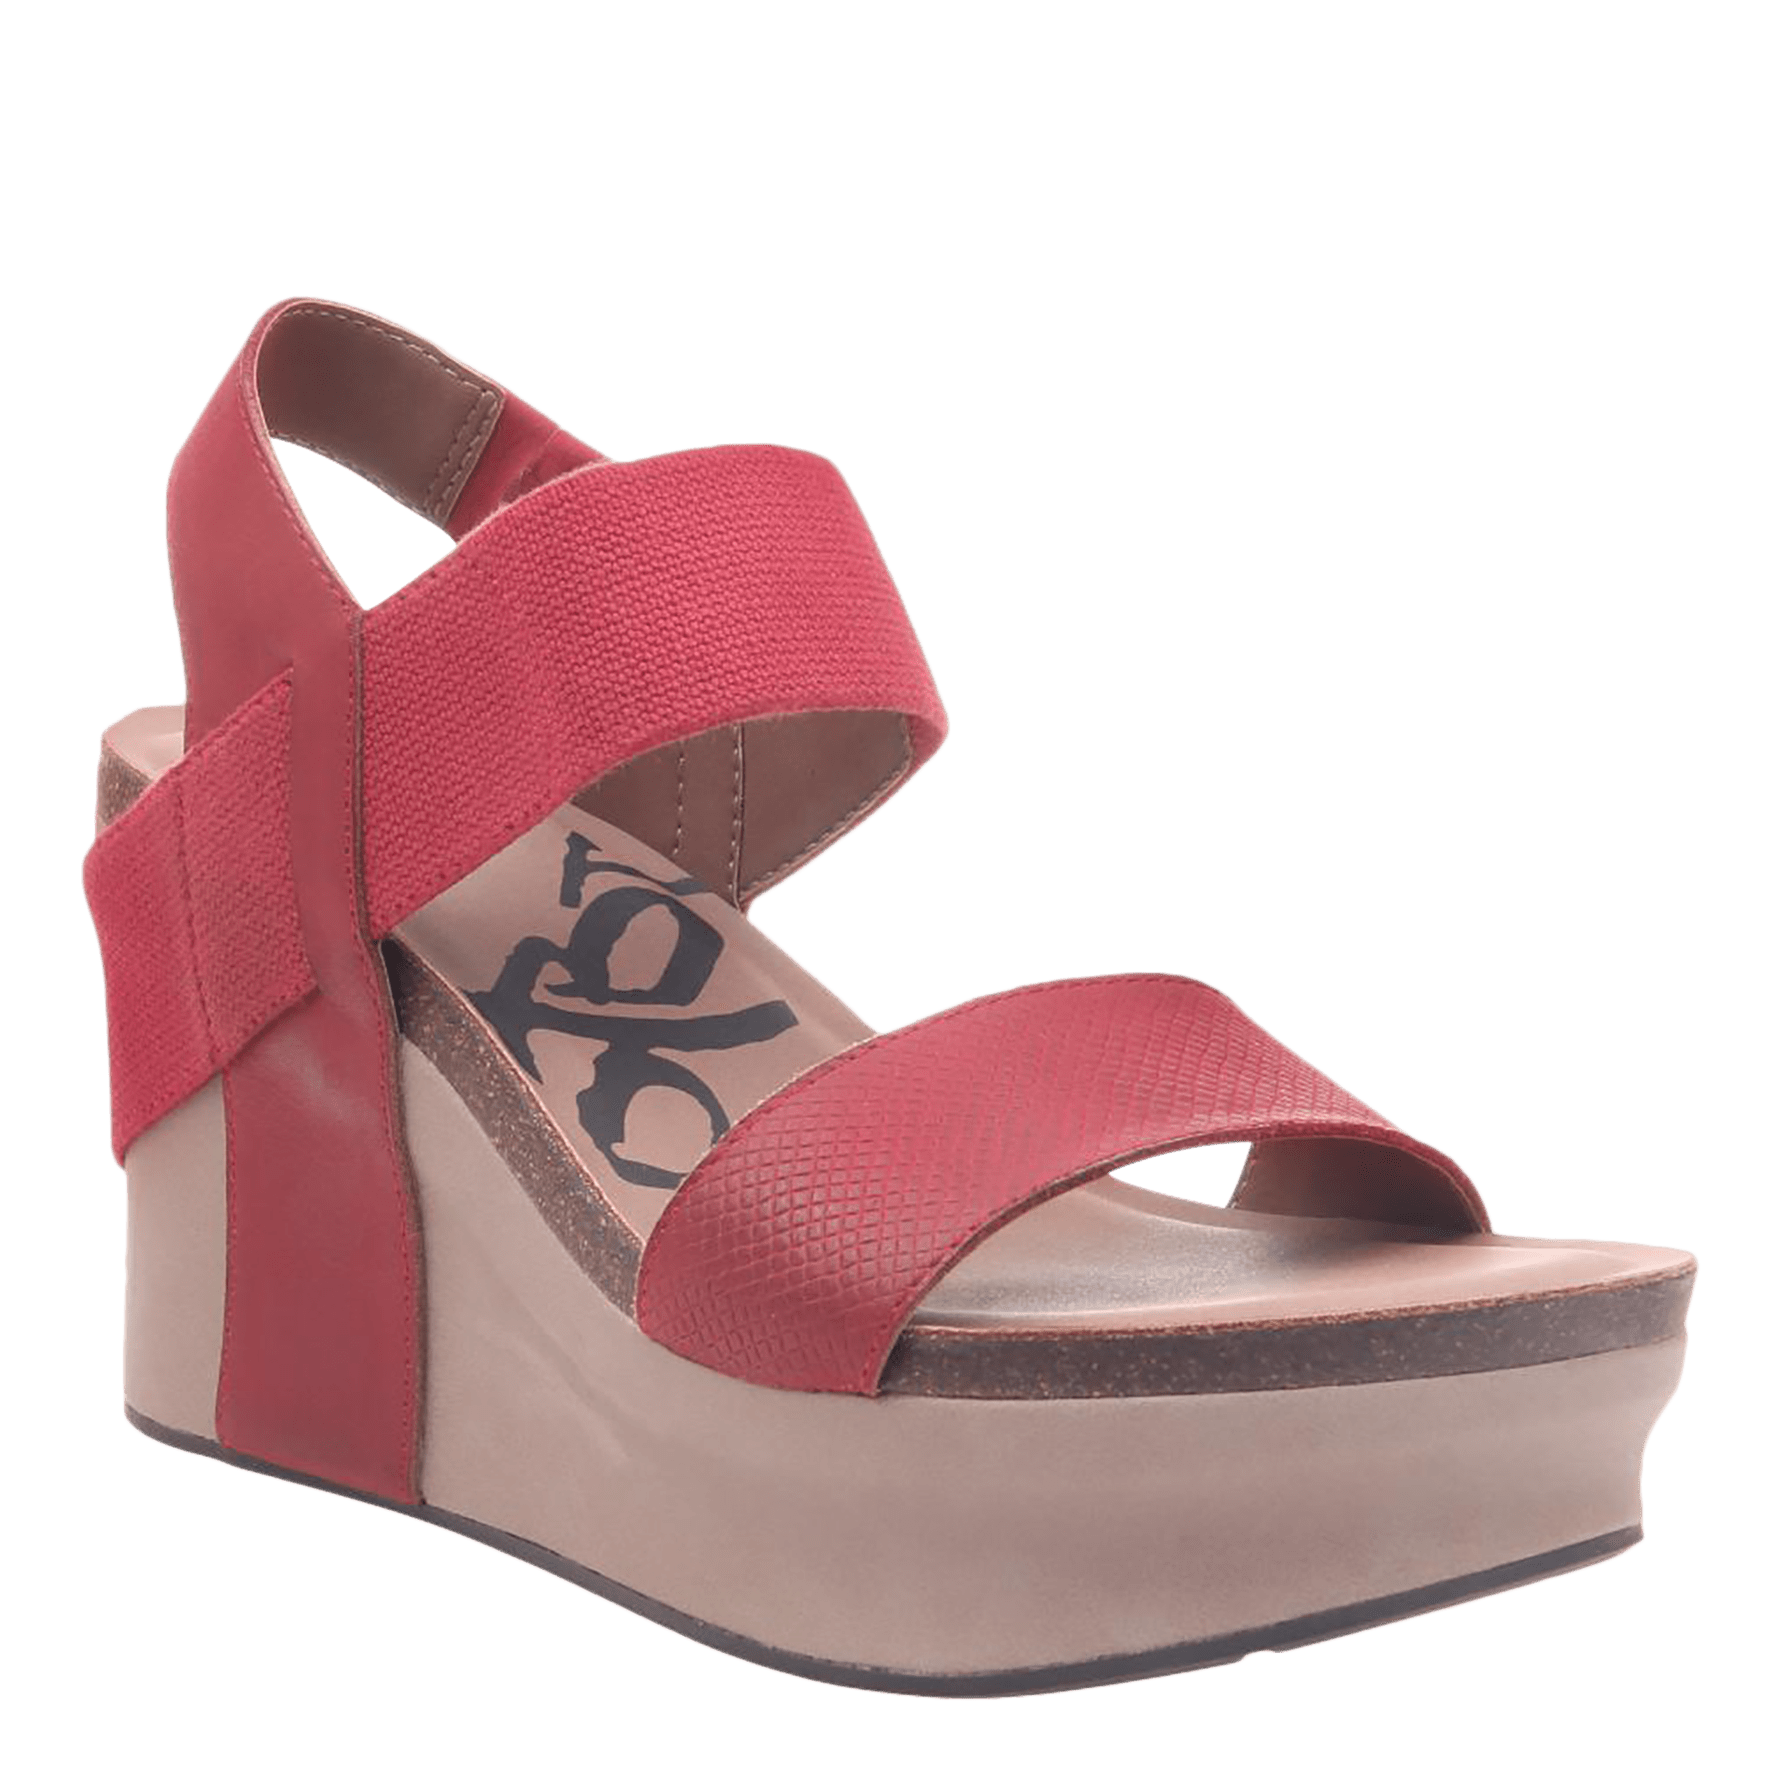 Bushnell Sandals Wedge In Sandals Red In Bushnell Red Wedge Bushnell Red In Wedge GqSUpzMV